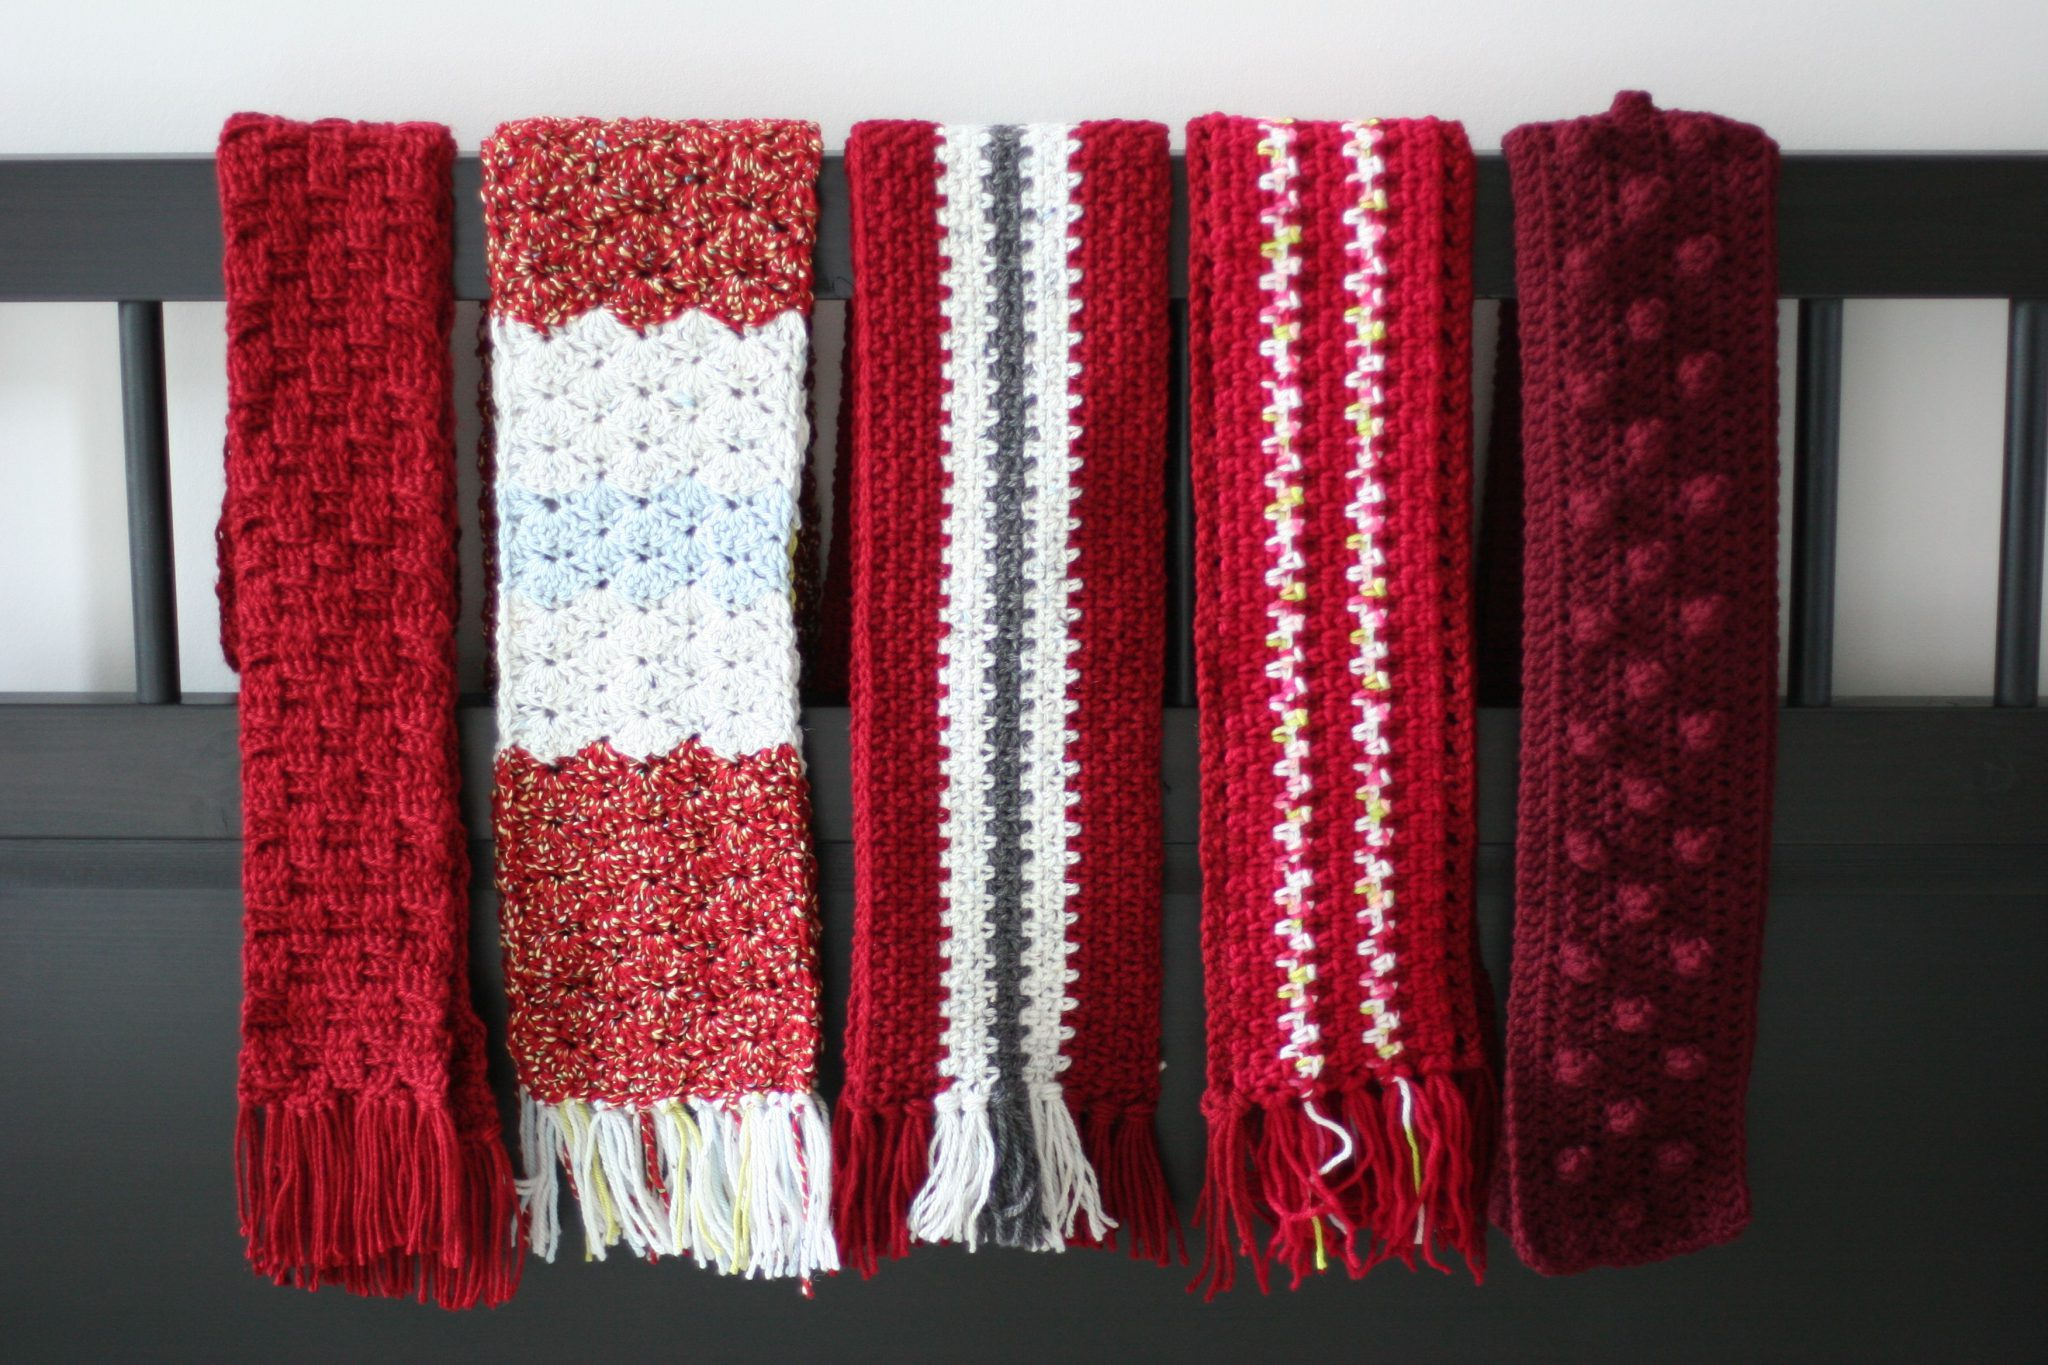 Crocheted Scarves for Charity Donation